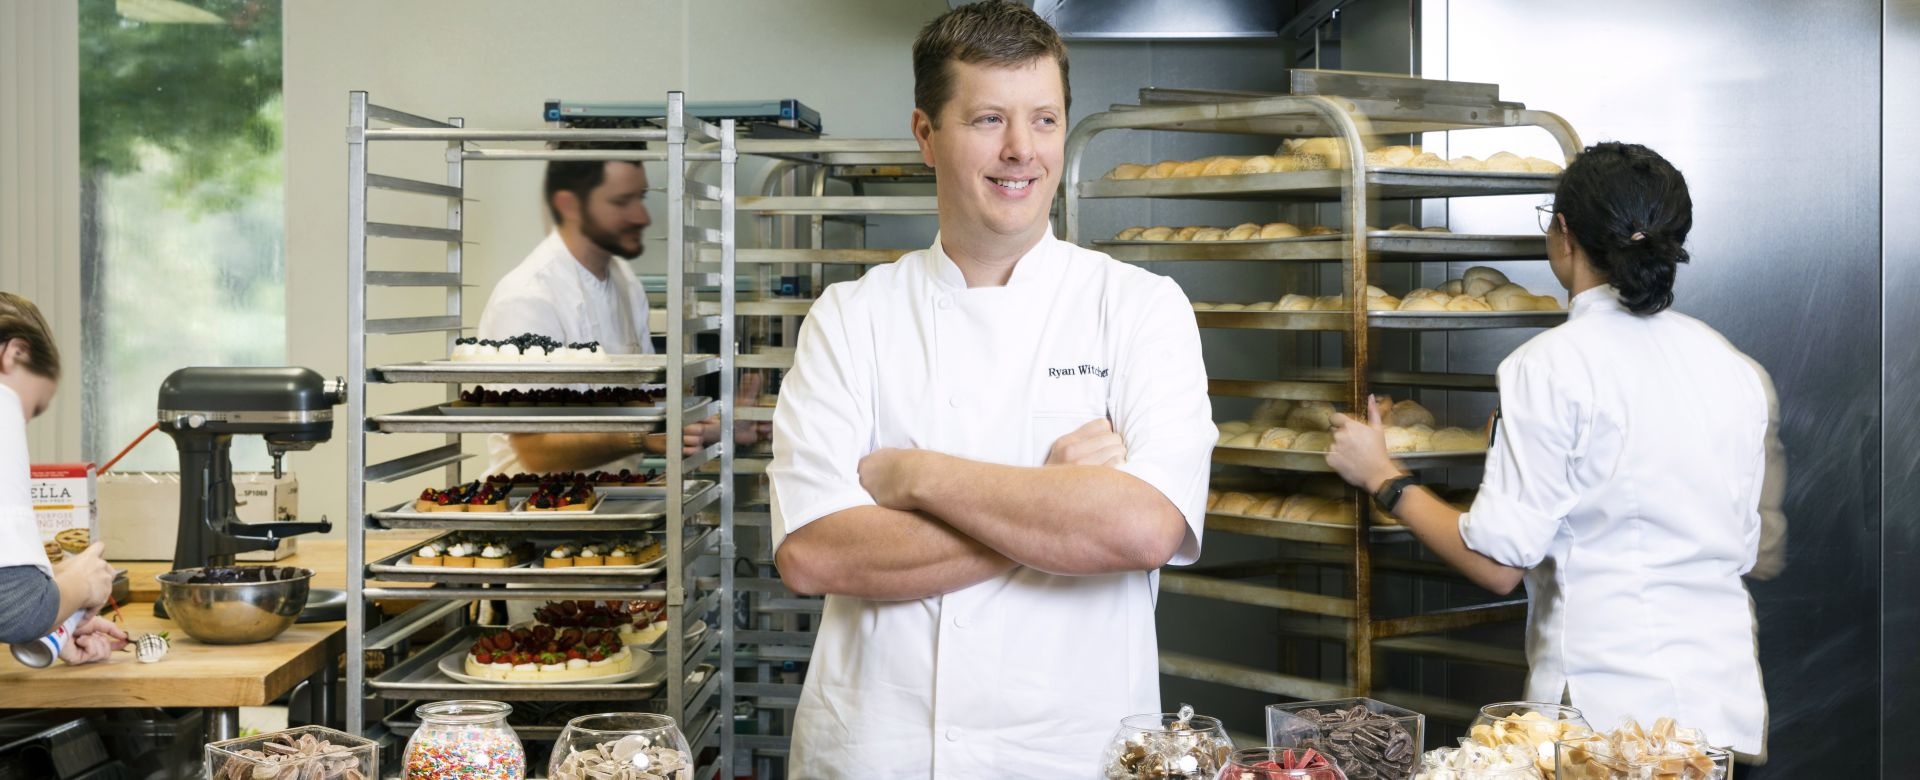 A chef smiles behind a display of macarons and chocolates.